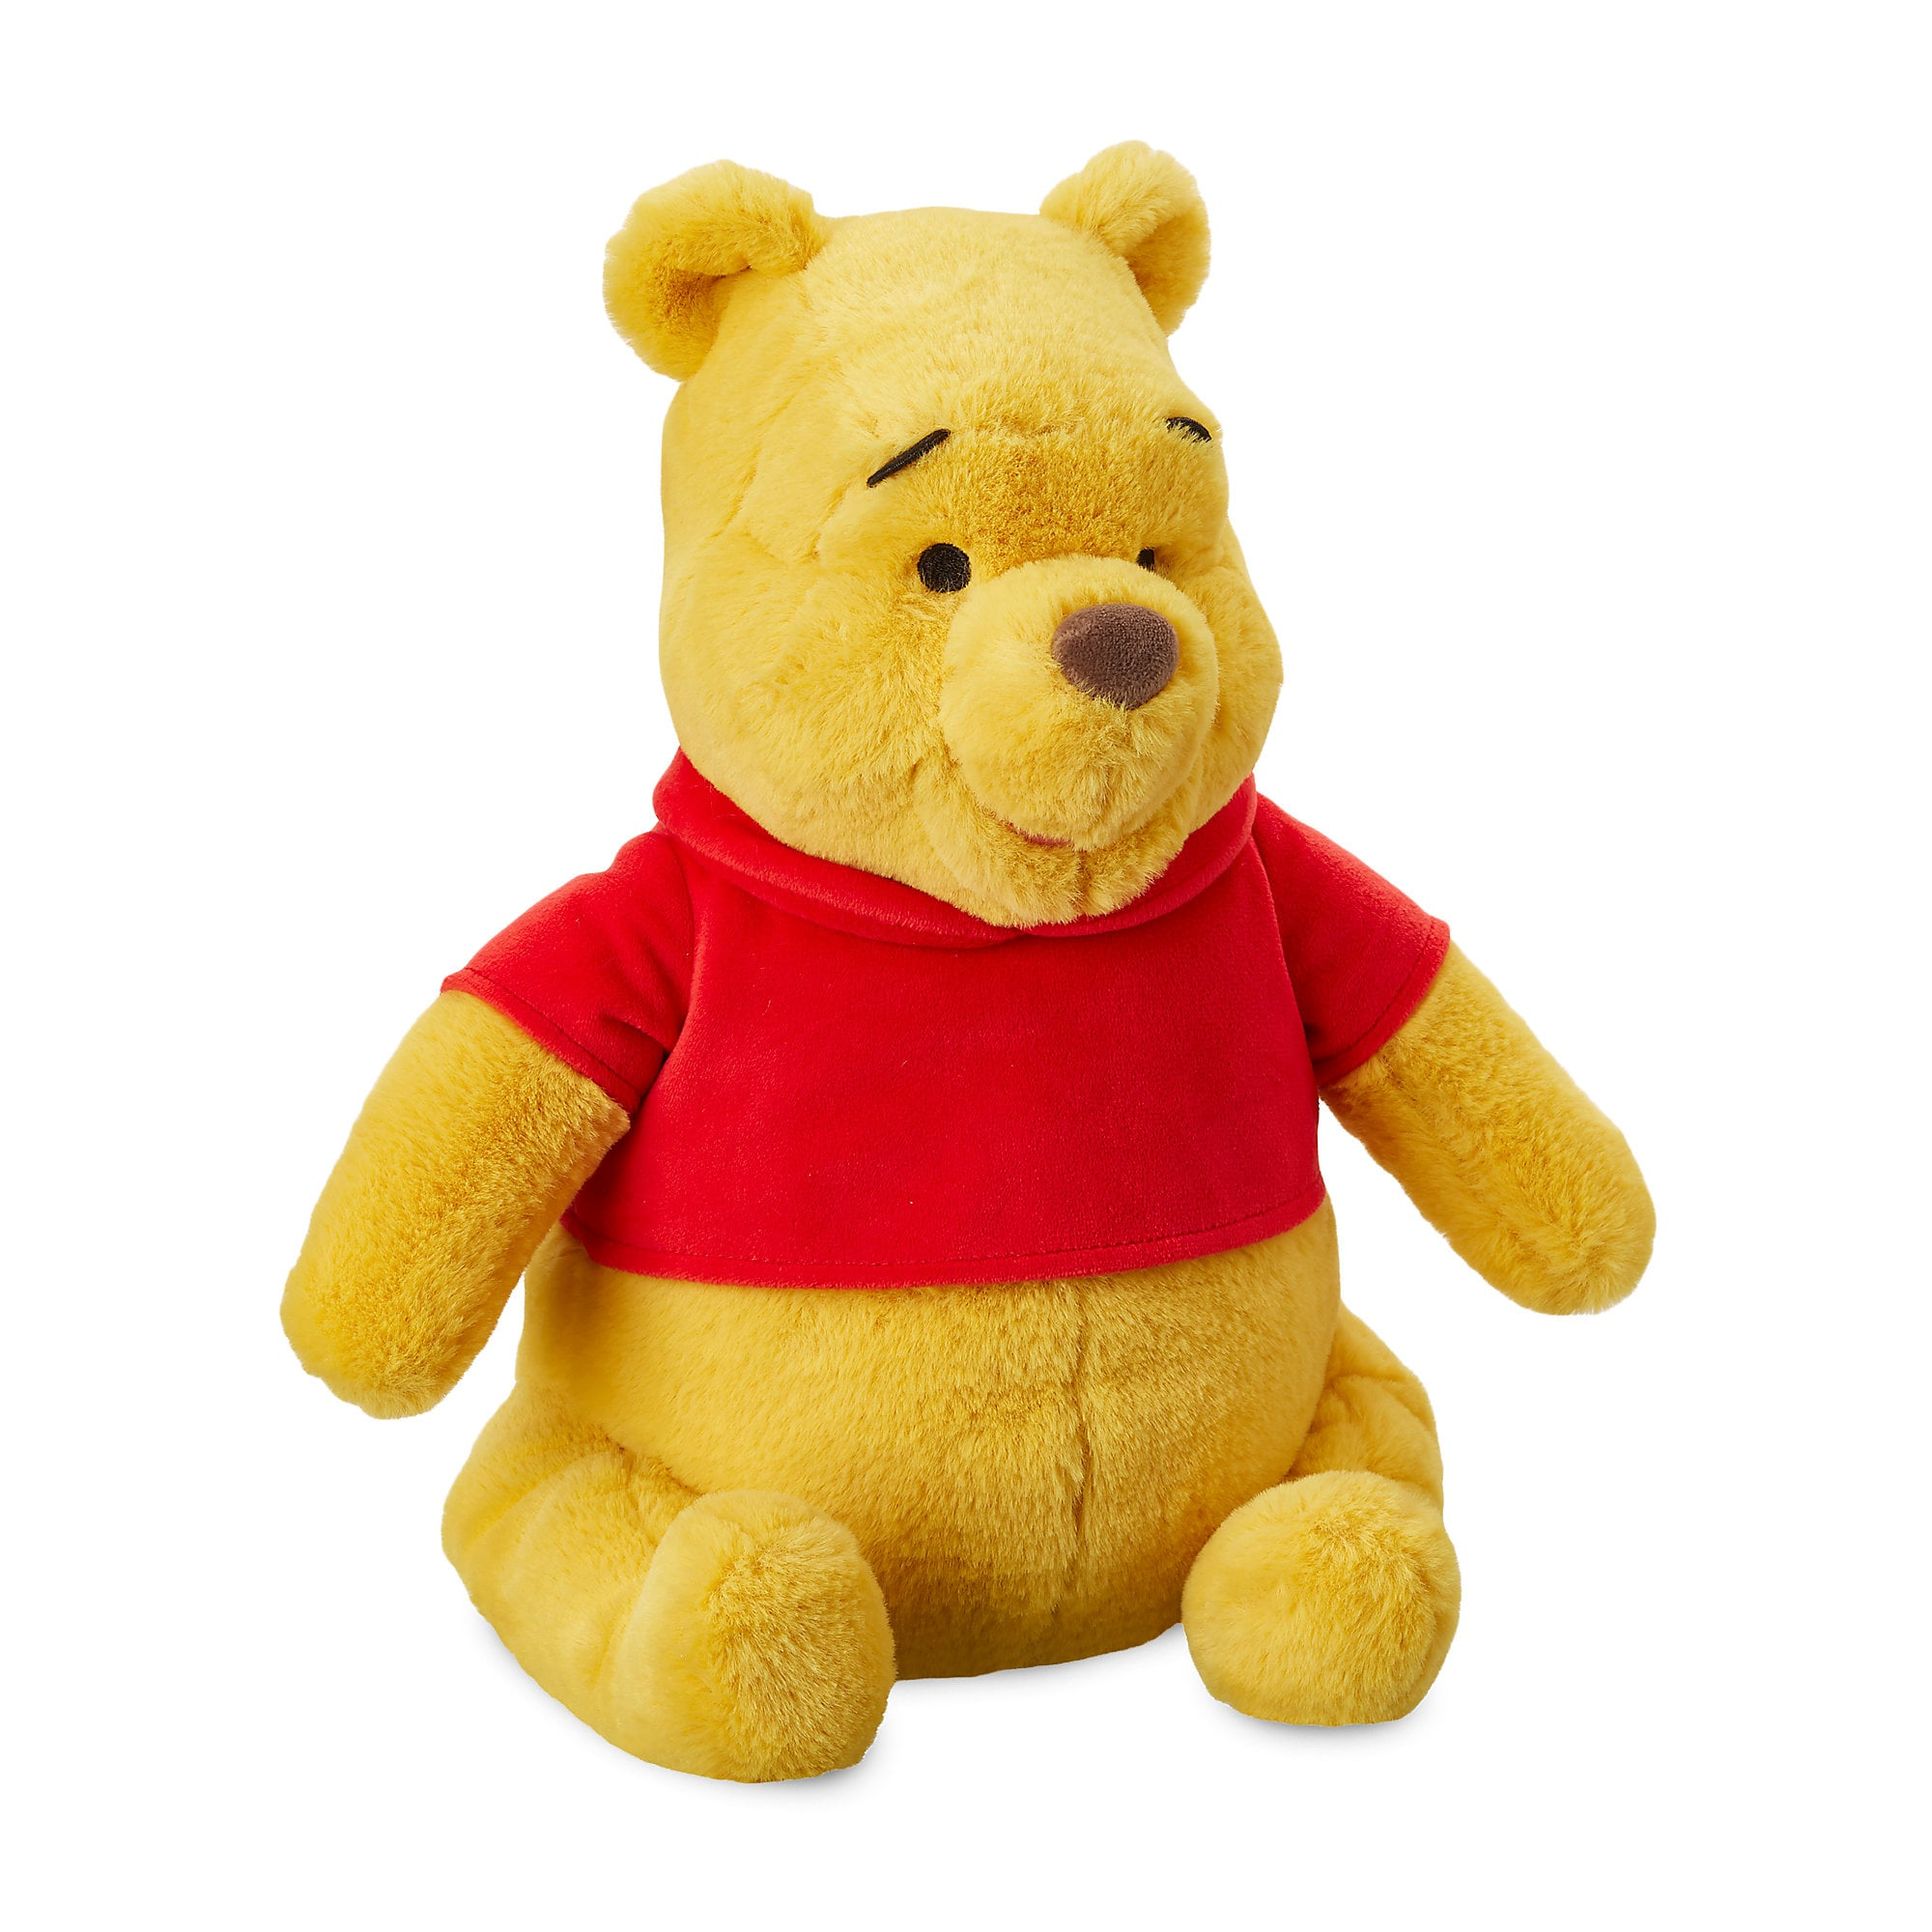 Winnie the Pooh Pictures, Information Fun